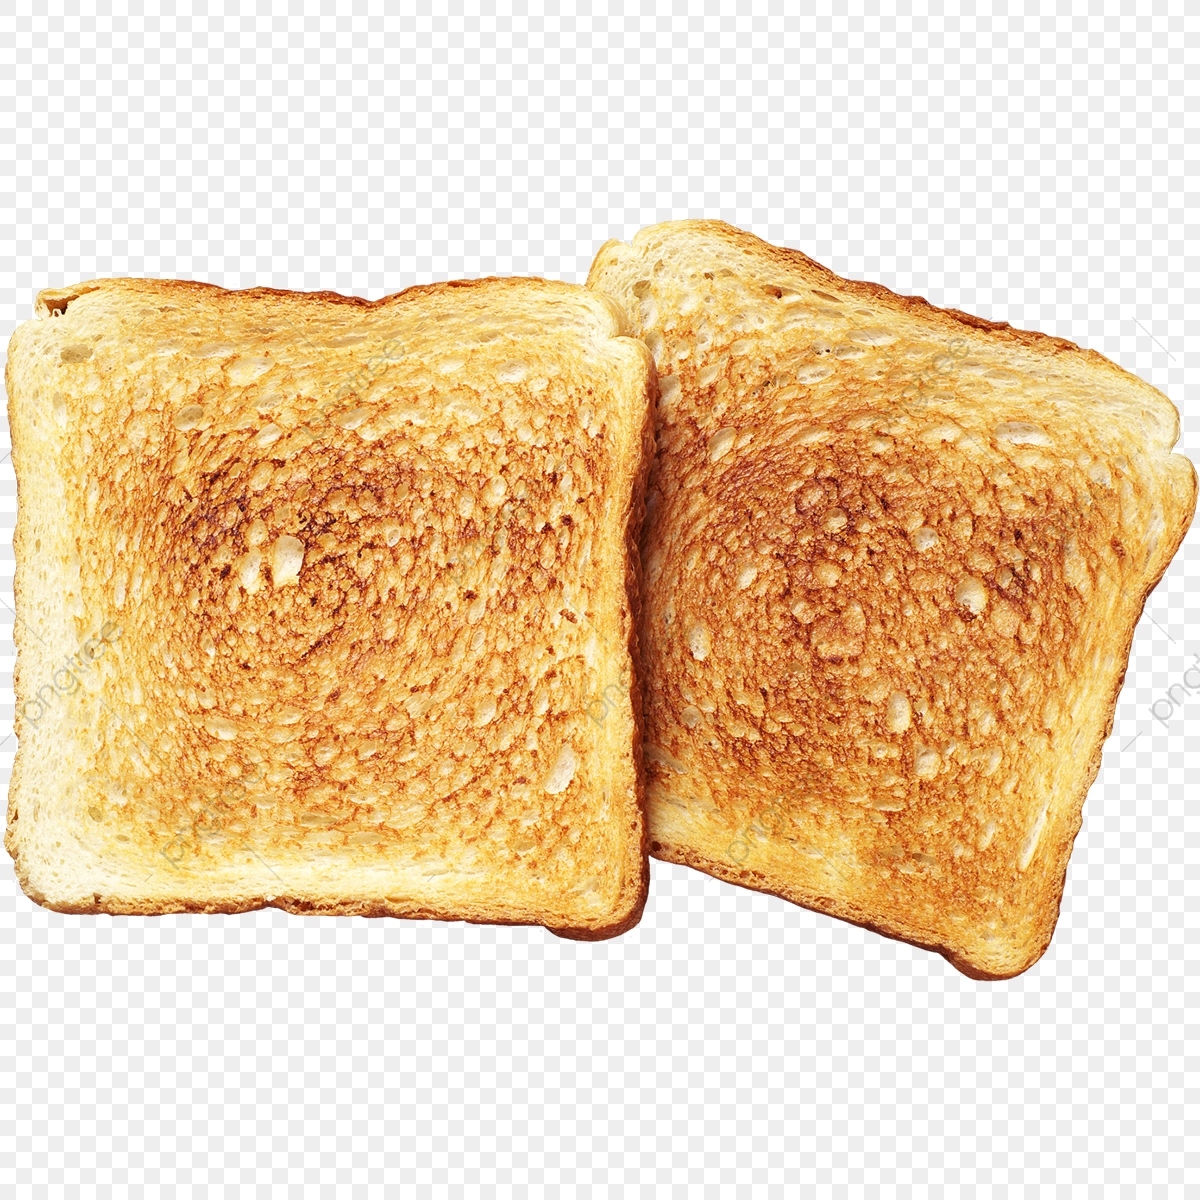 Fried Toasted Bread, Fried Toasted, Toast, Toast Bread PNG.